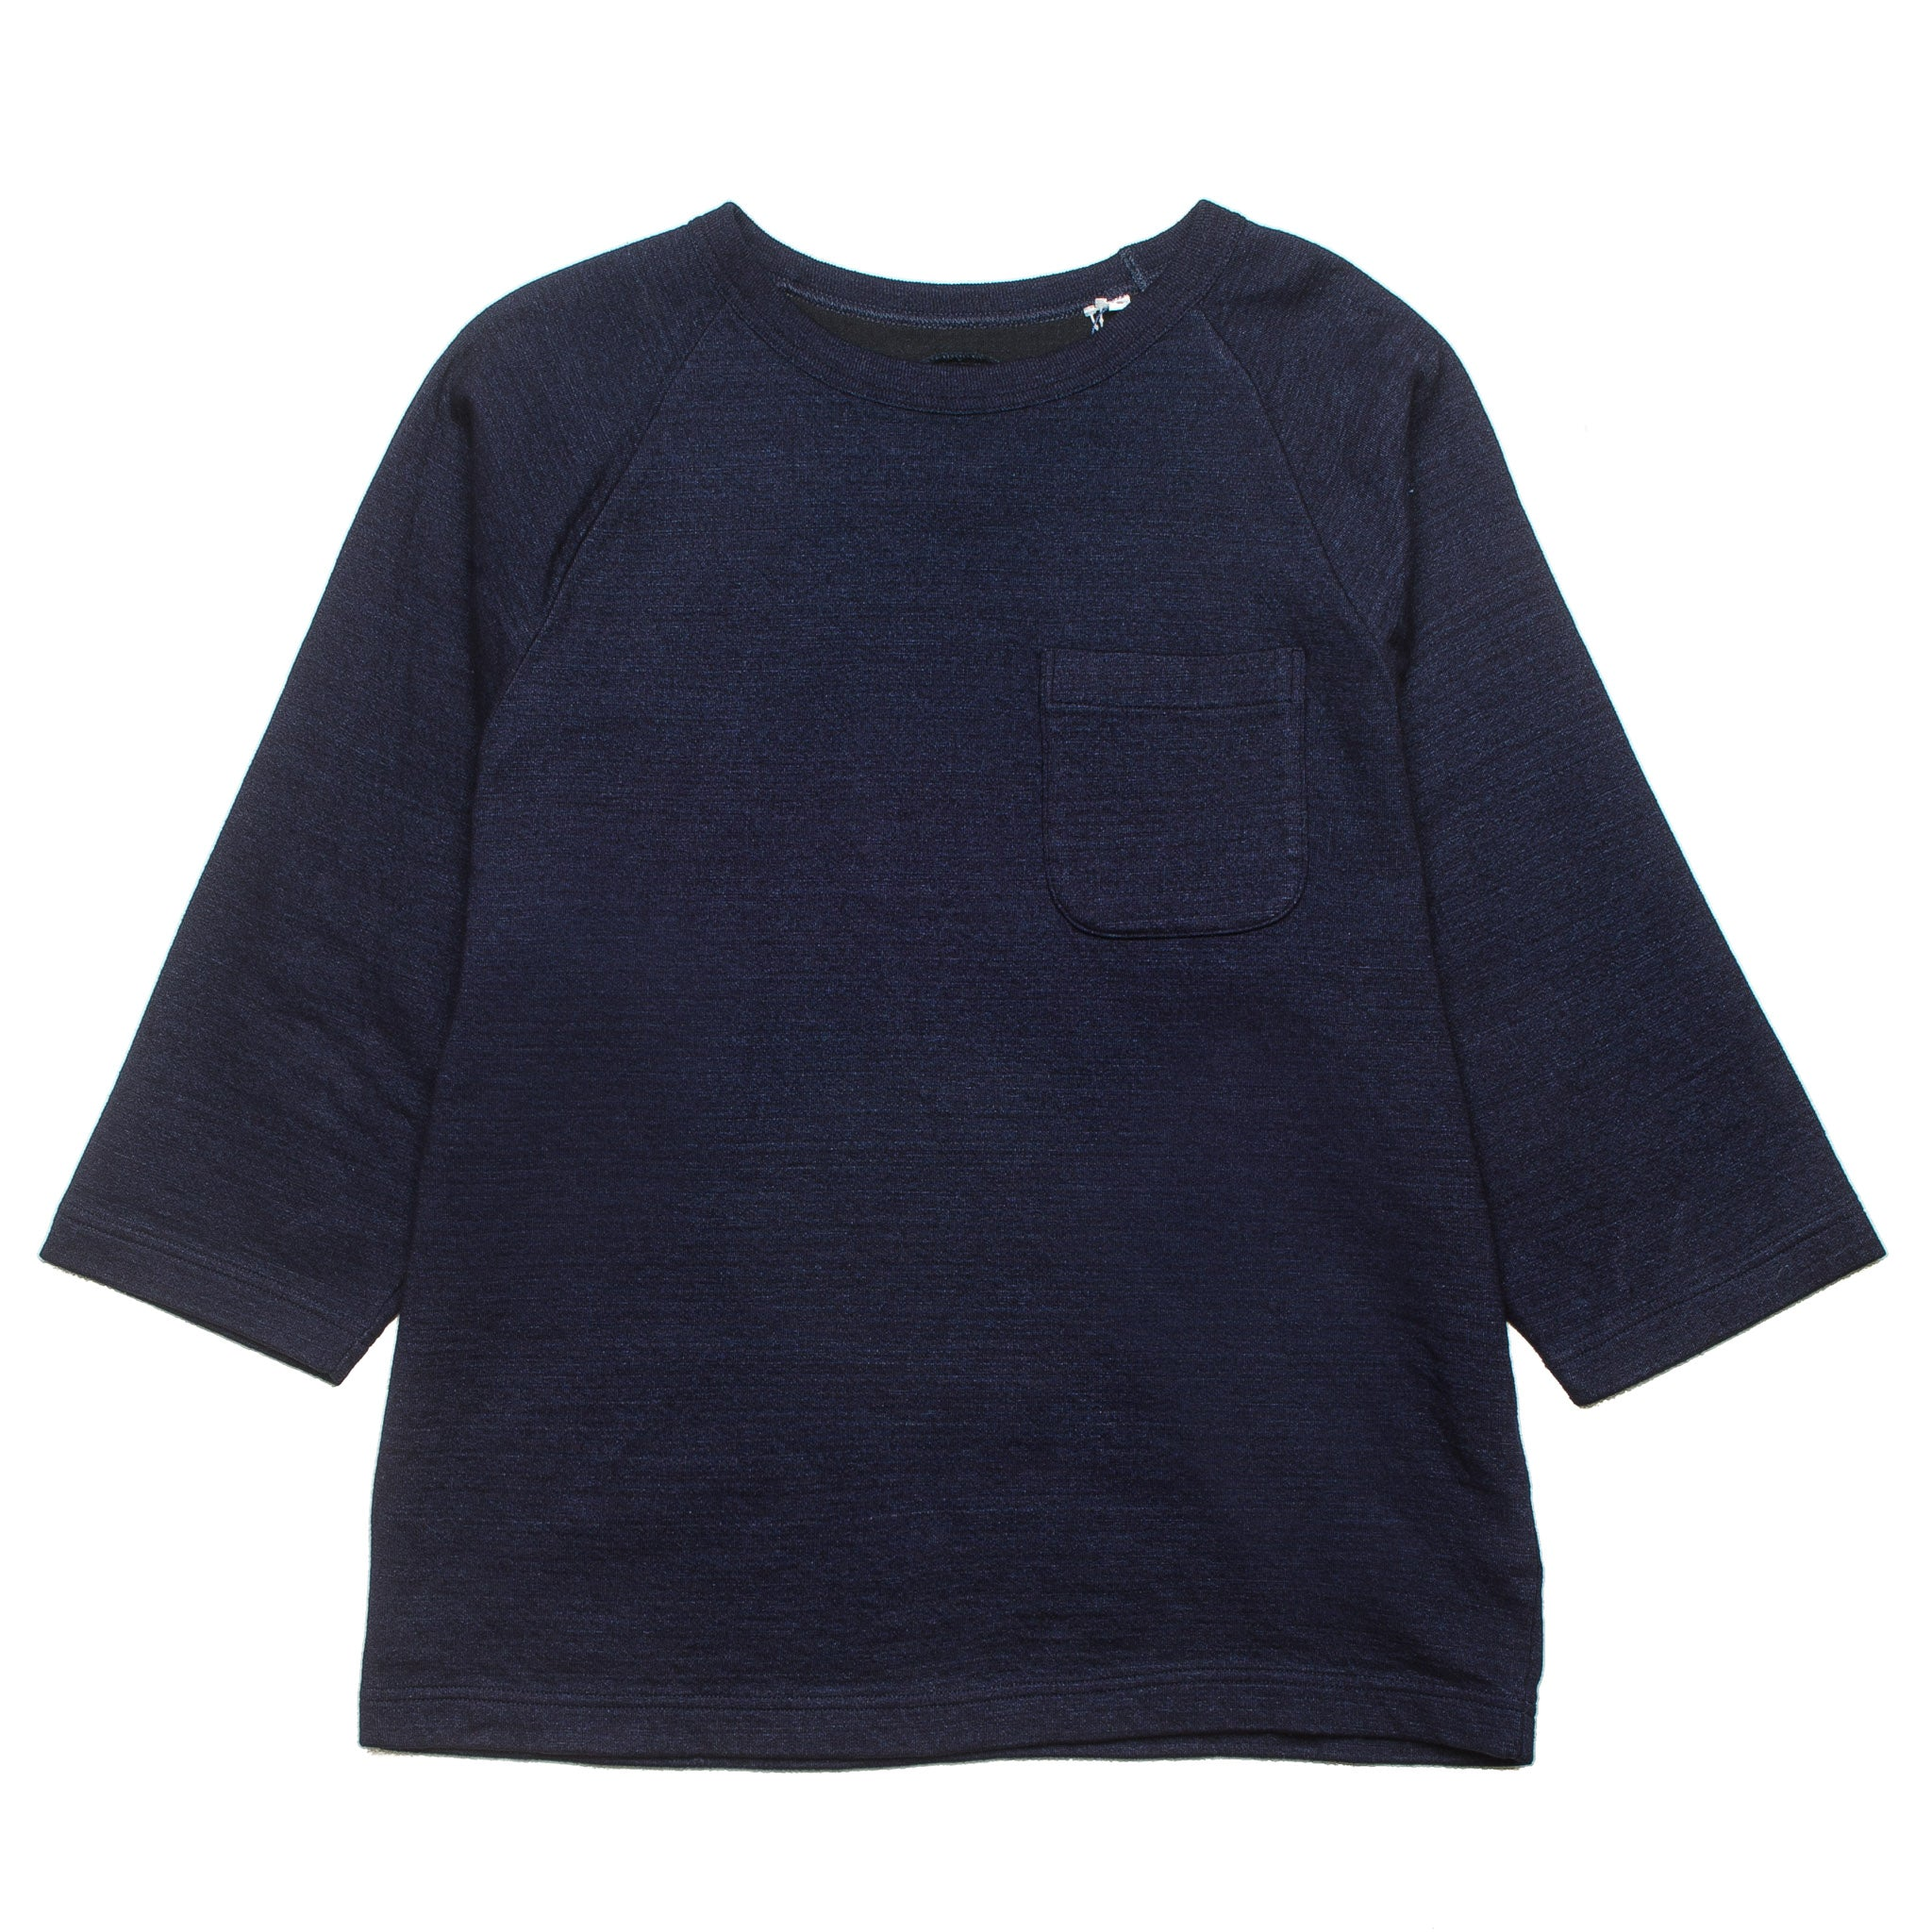 Dual Layered Heavy Raglan Indigo 700070495